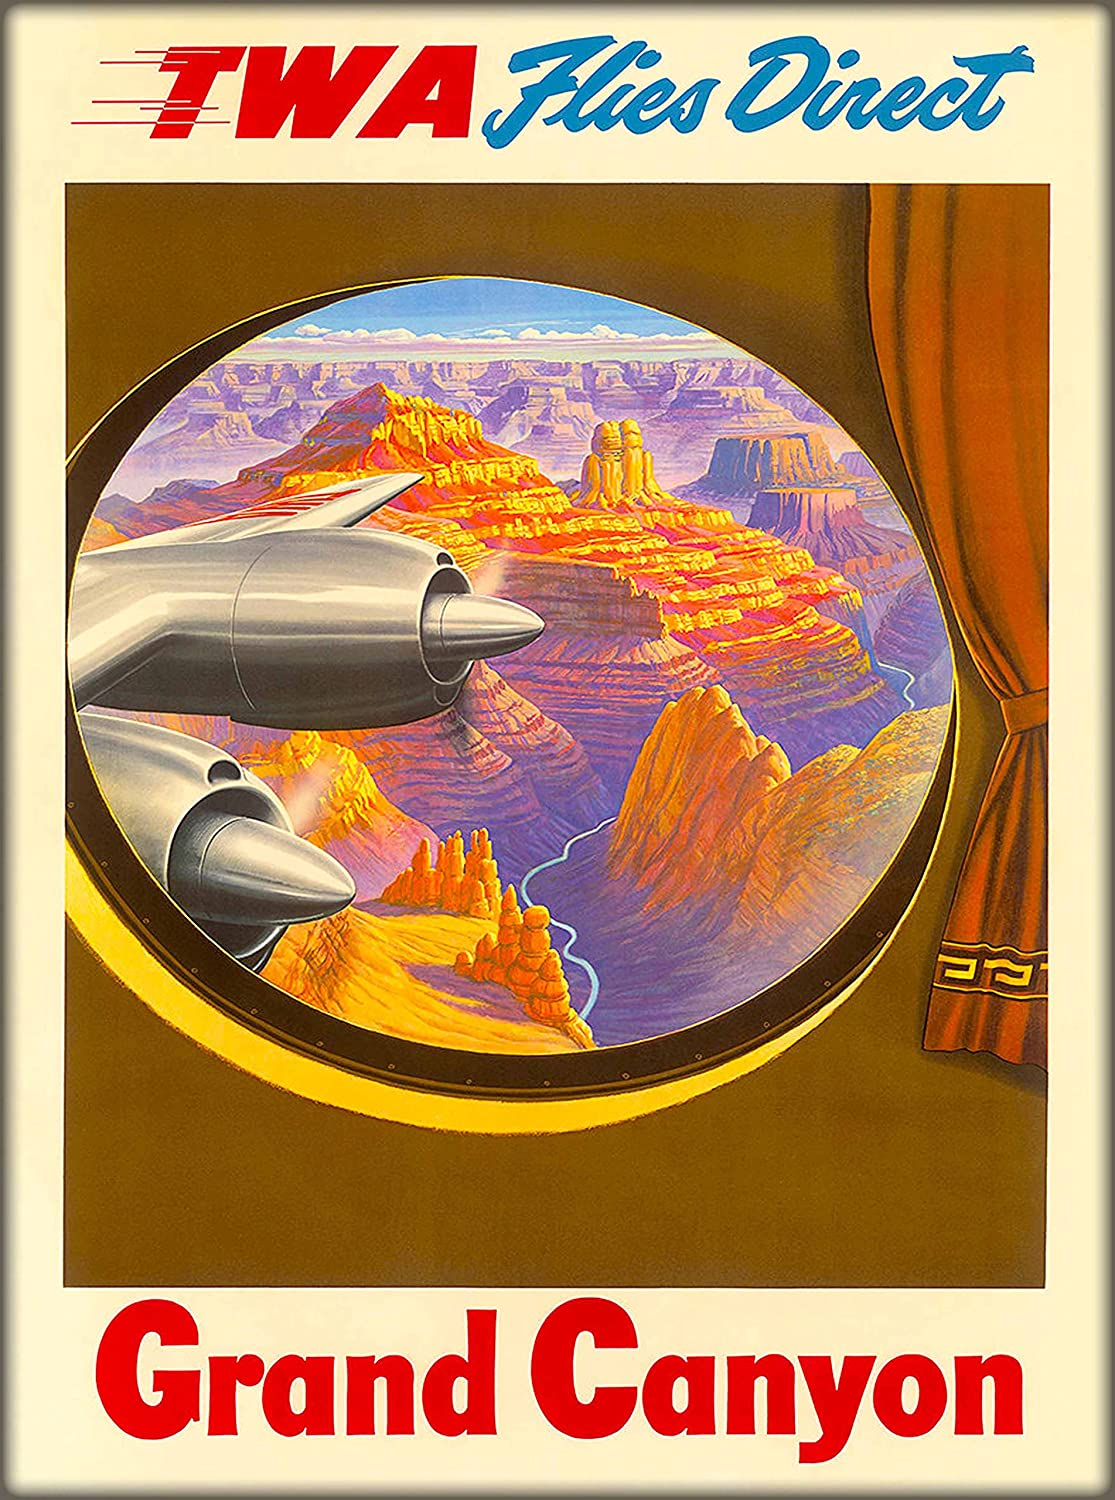 Fly TWA Arizona Airline vintage print various sizes framed /& unframed